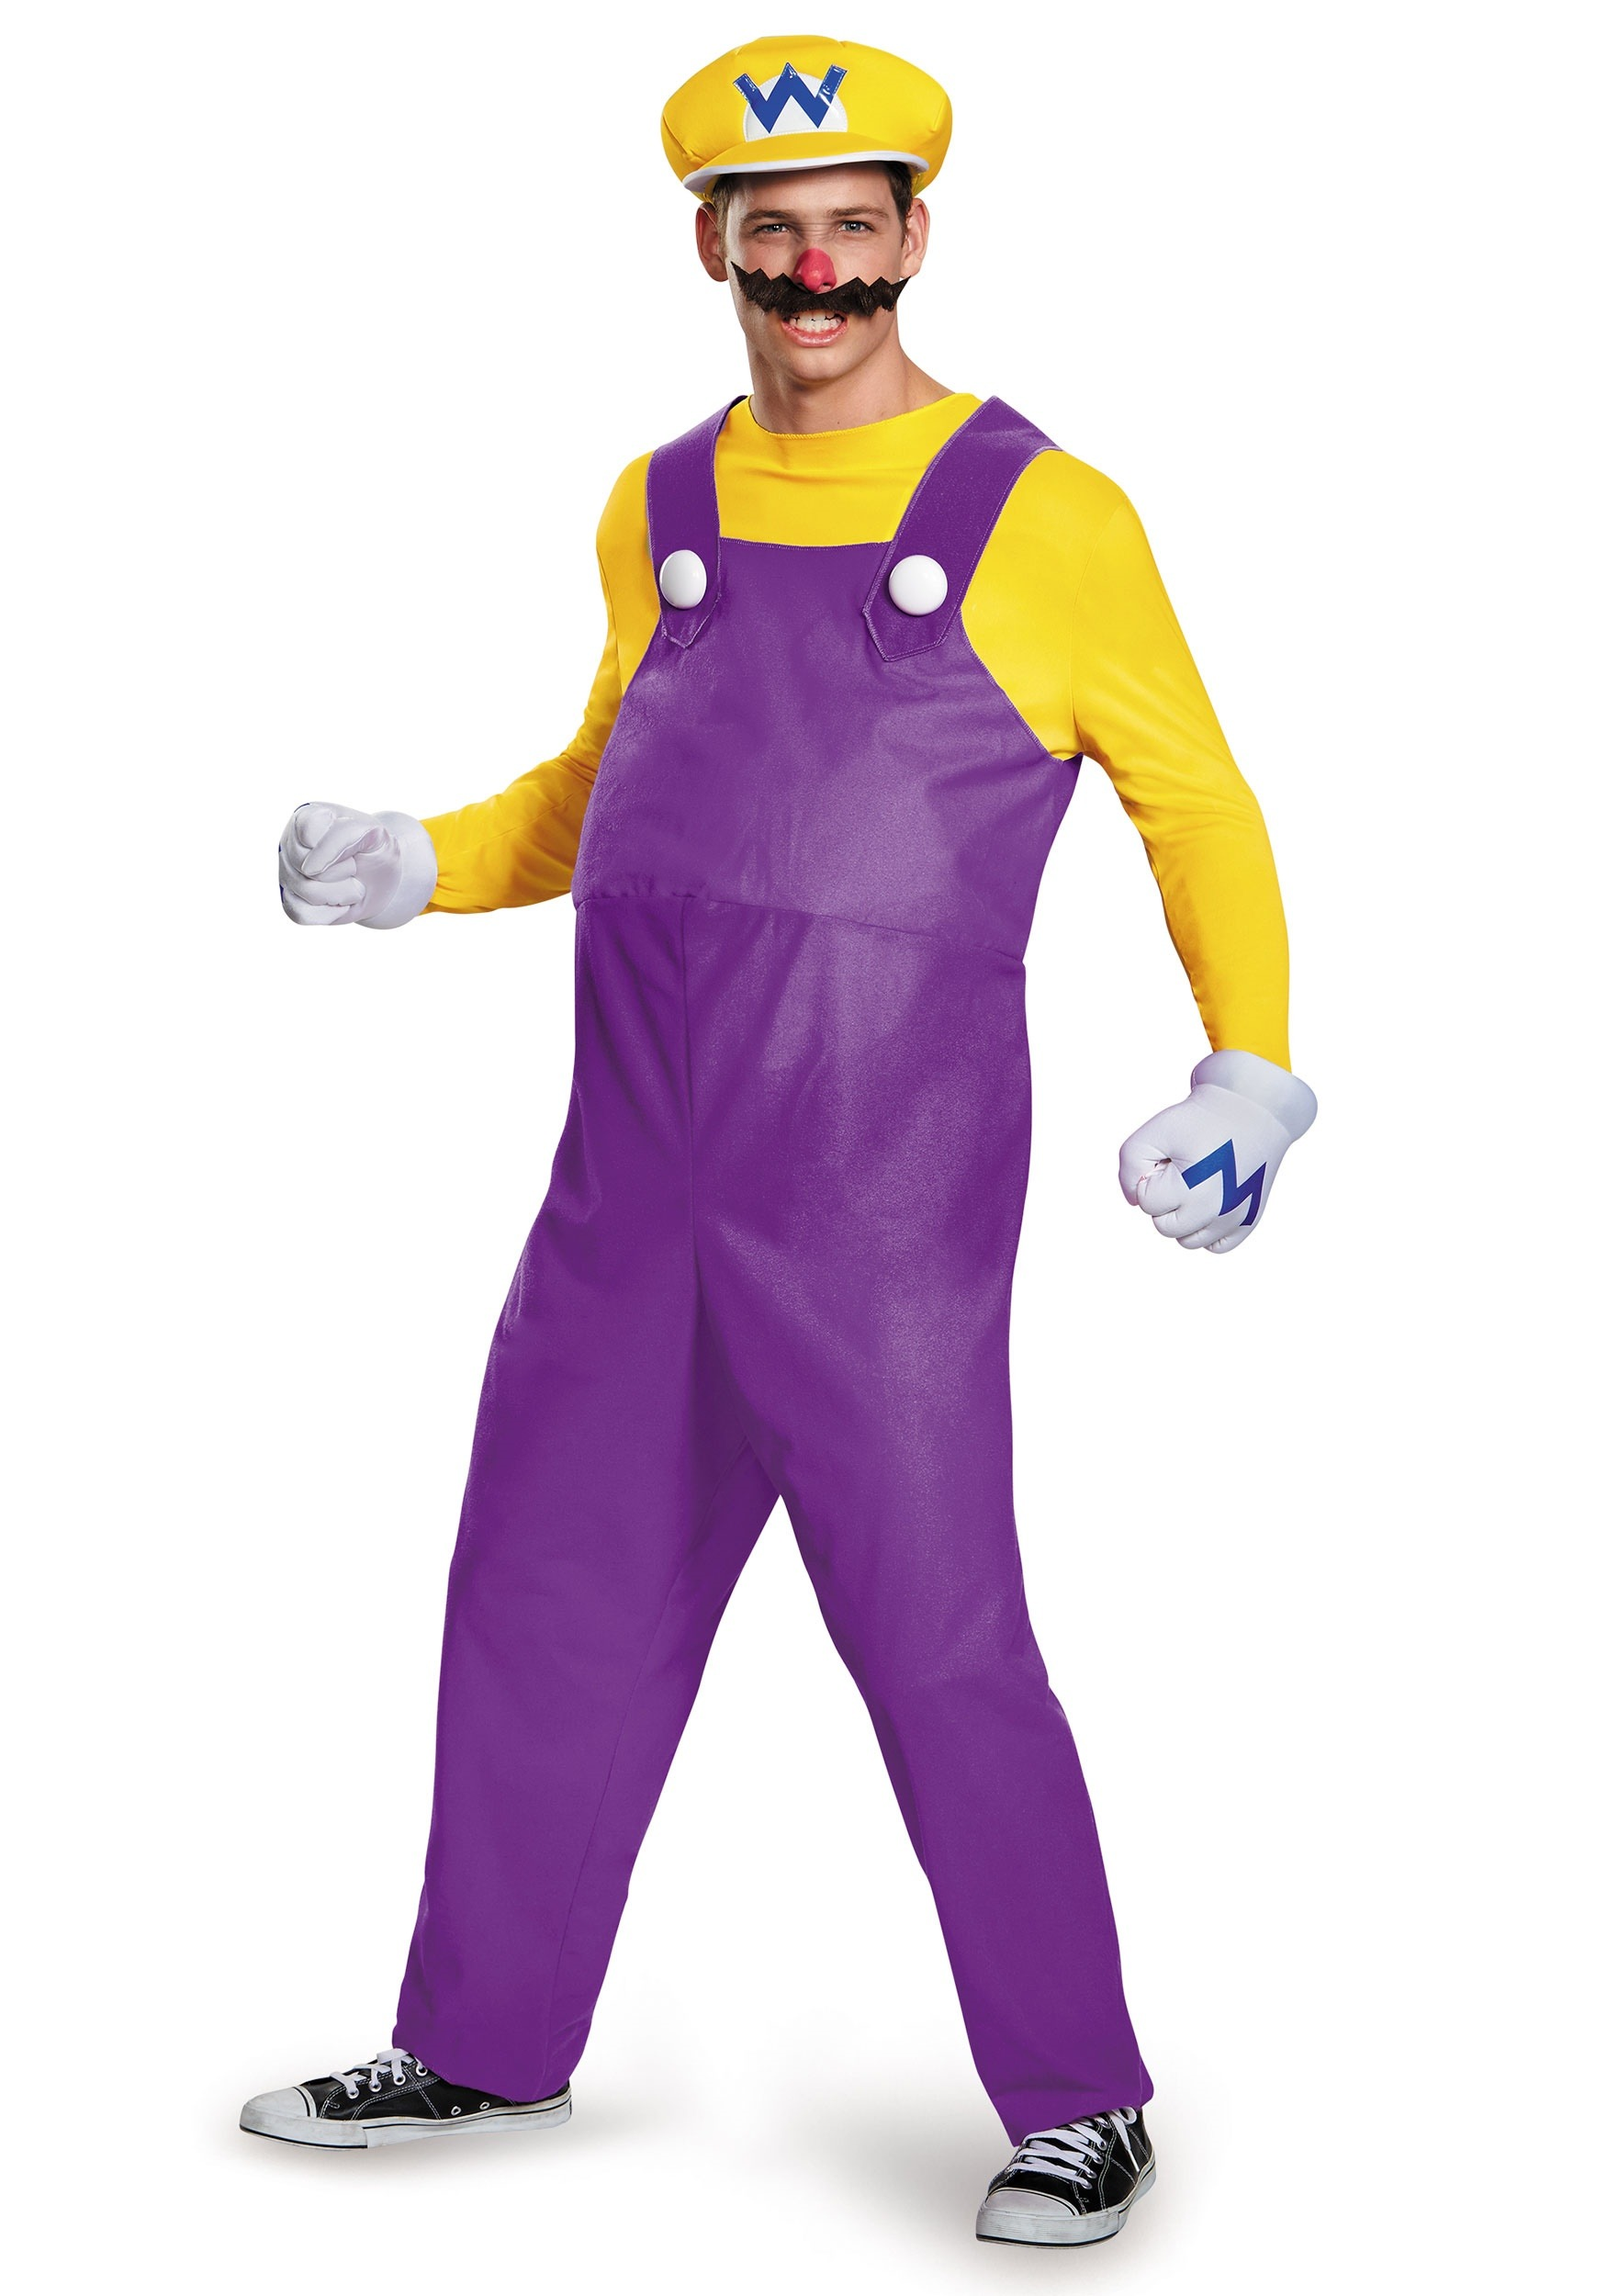 Wario Deluxe Adult CostumeWaluigi And Wario Costumes